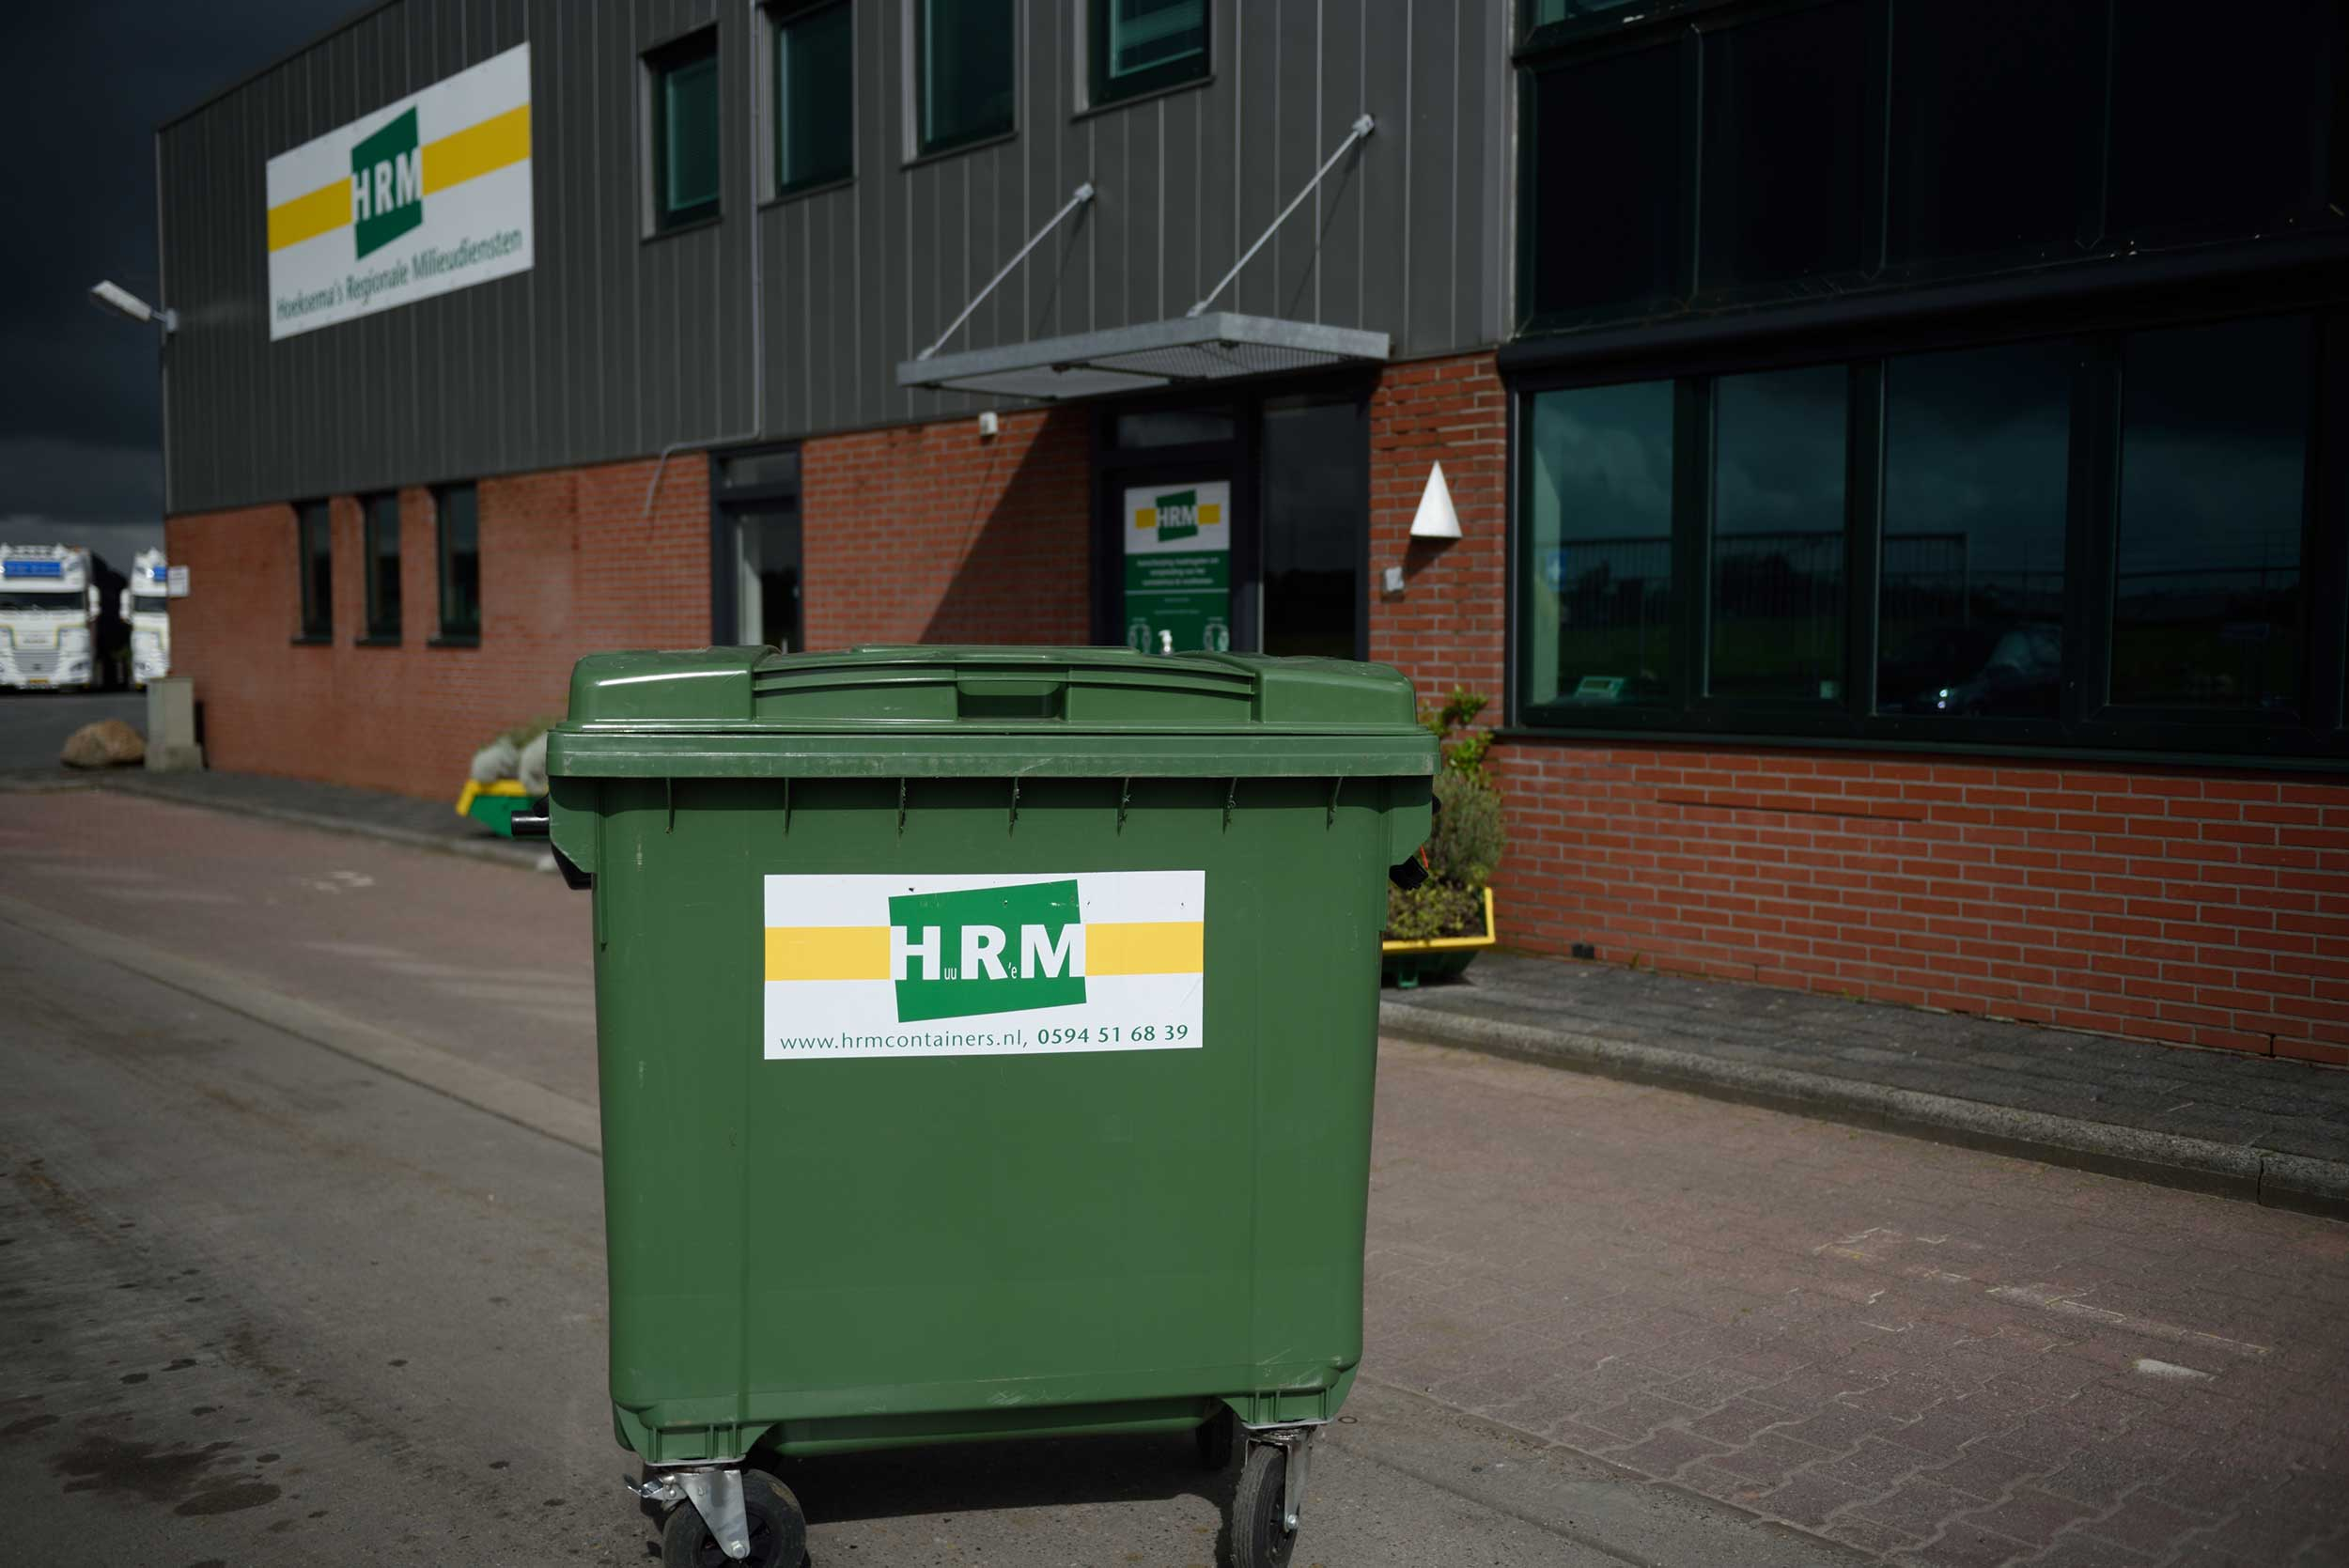 HRM Nederland - Rolcontainers